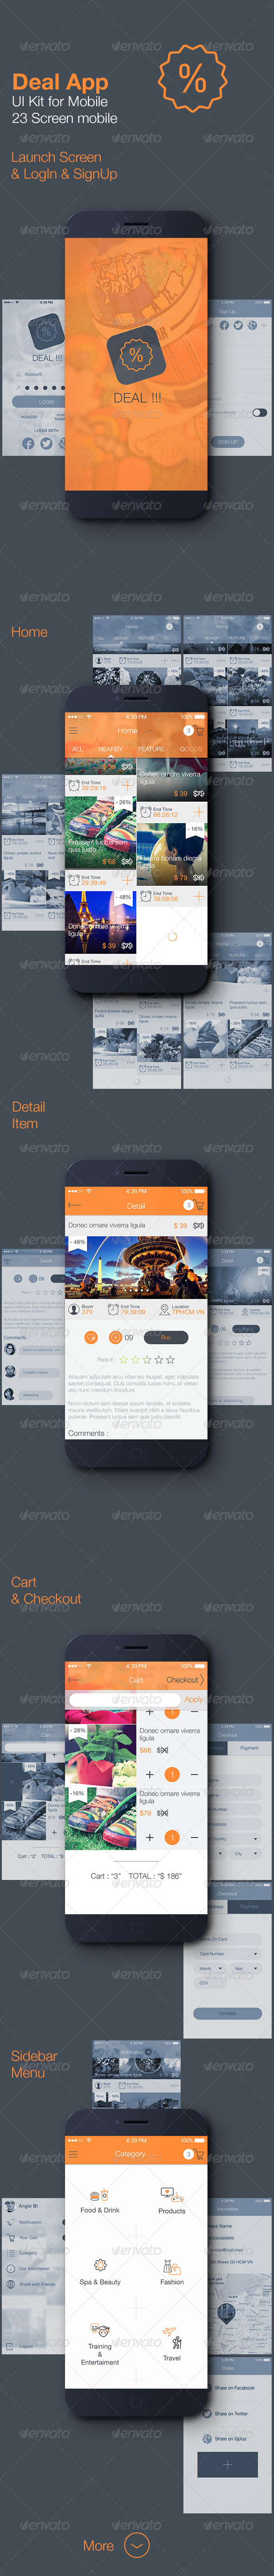 GraphicRiver Deal App Mobile UI Kit 7648908